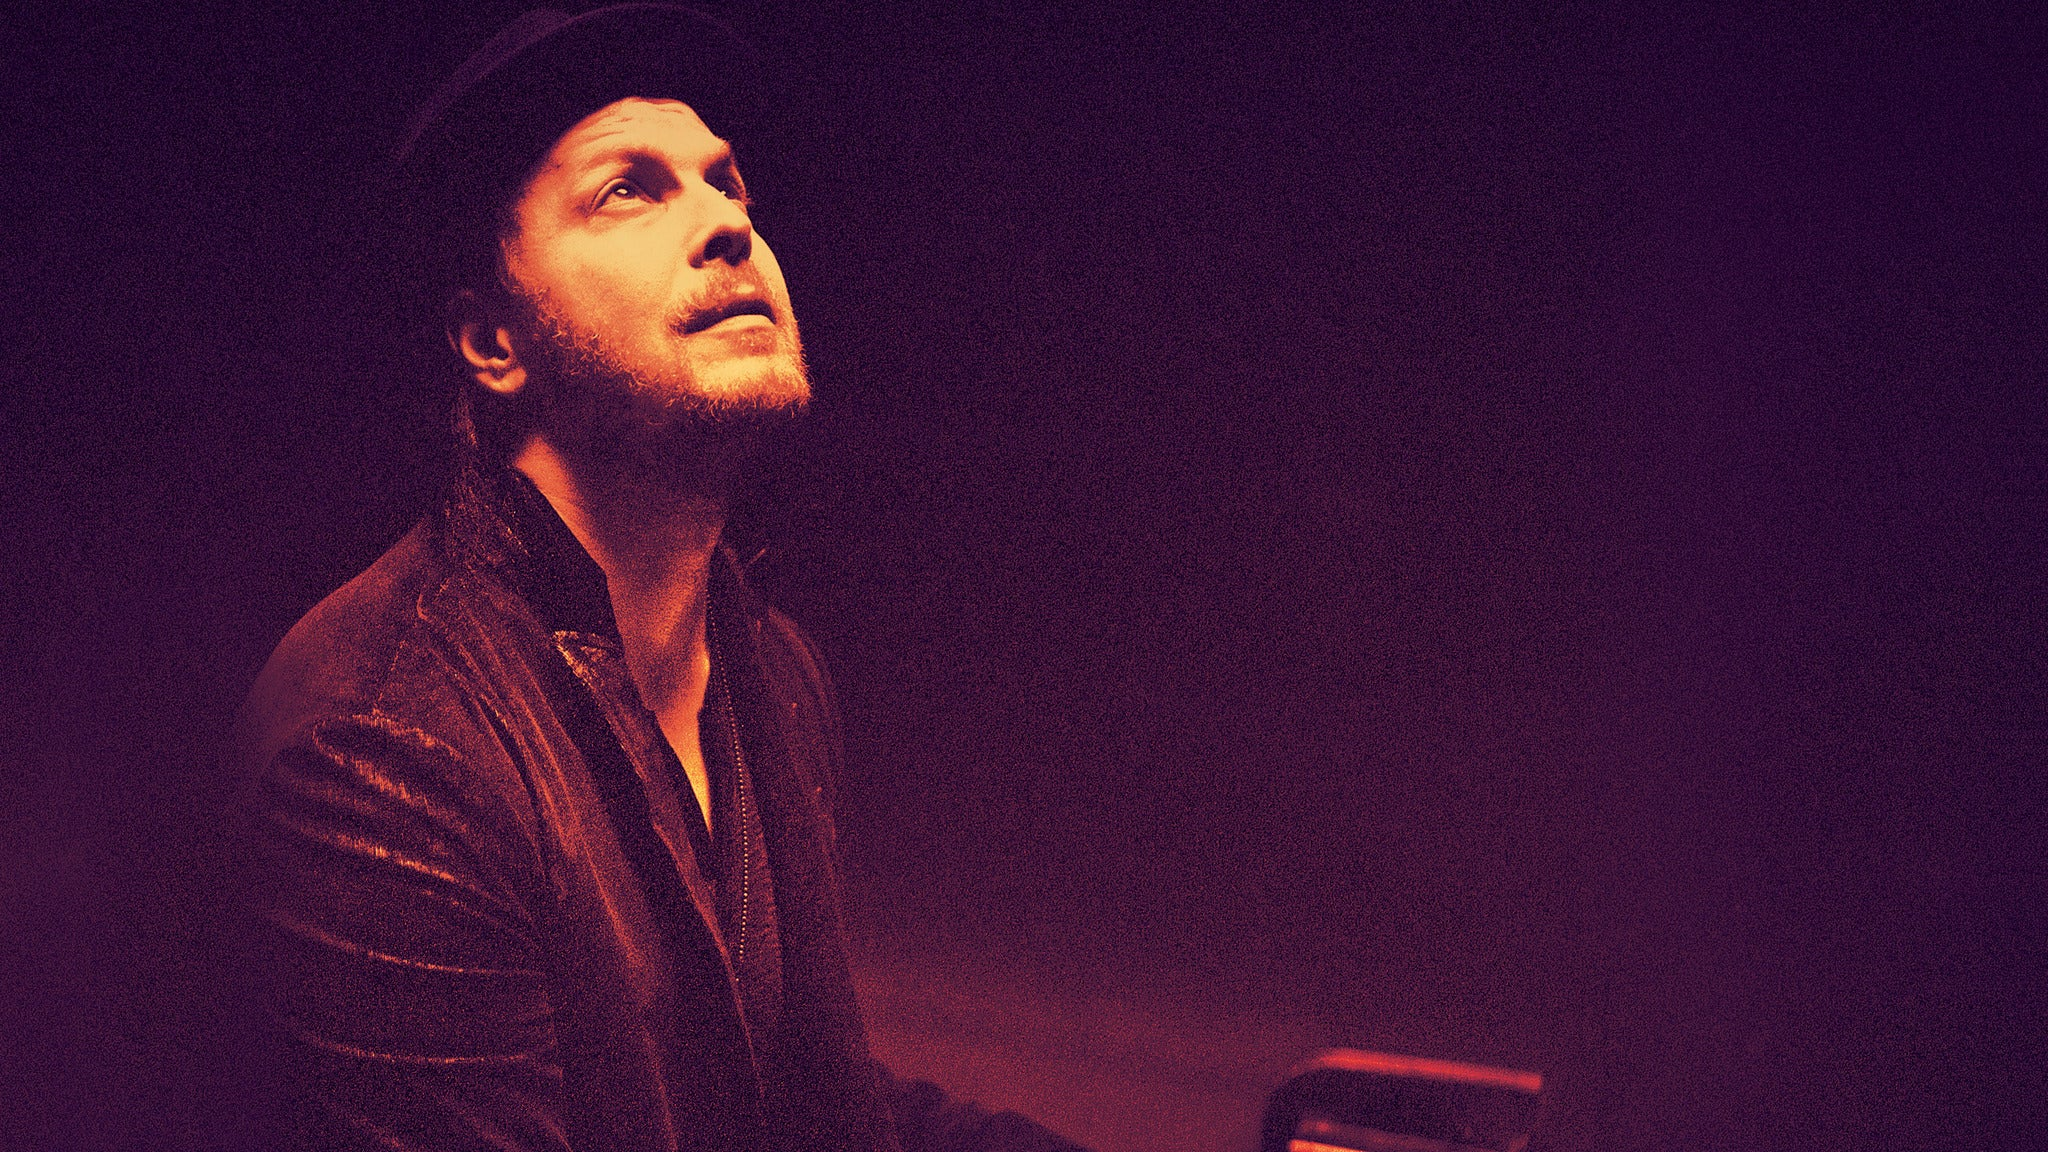 Gavin DeGraw at Freeman Stage